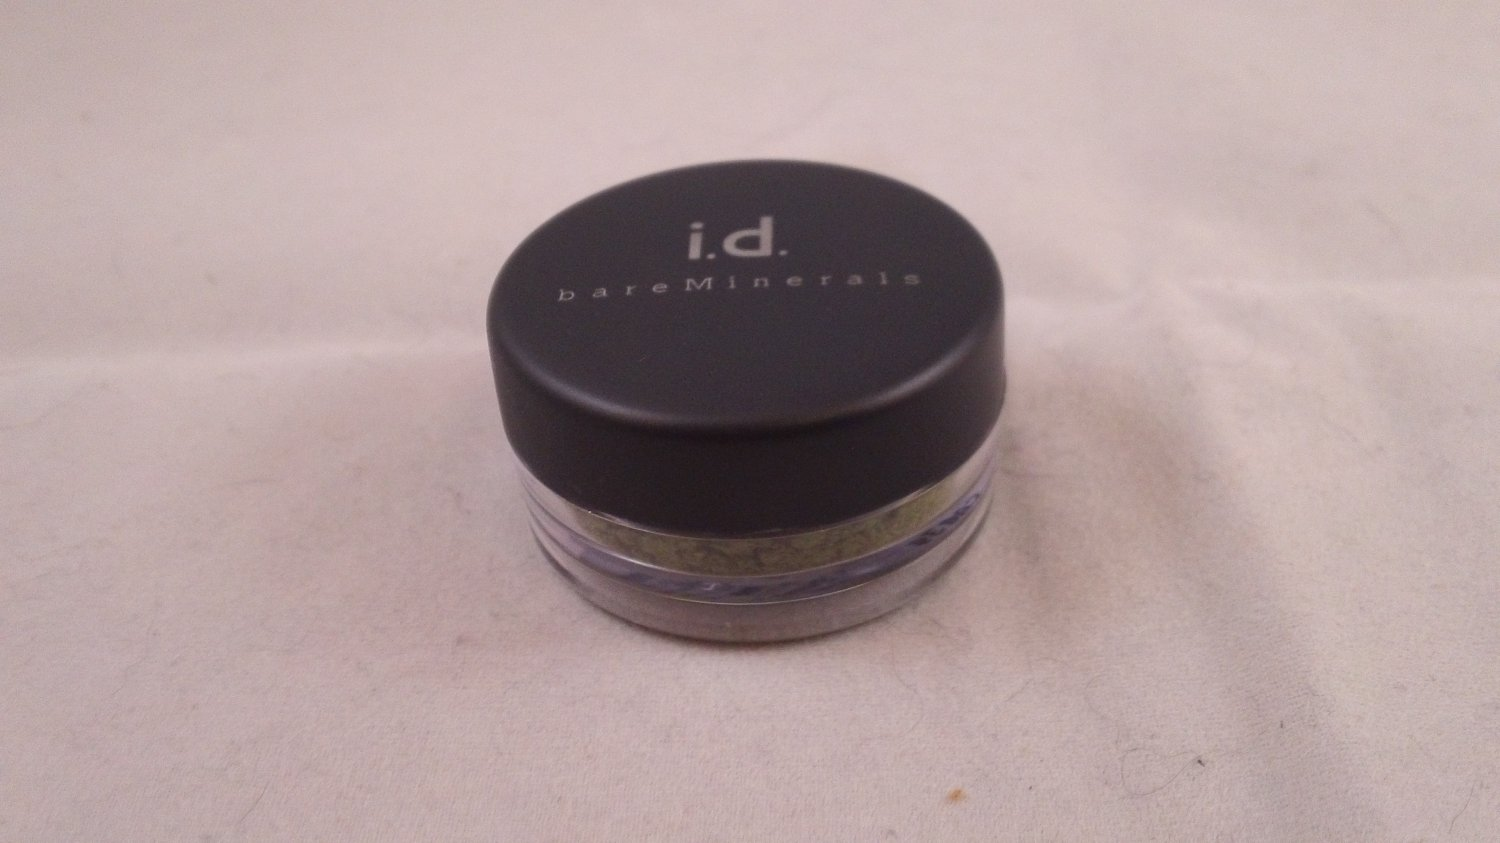 Bare Escentuals bareMinerals i.d. Glimpse Eyecolor Minerals Eye Shadow Real Deal